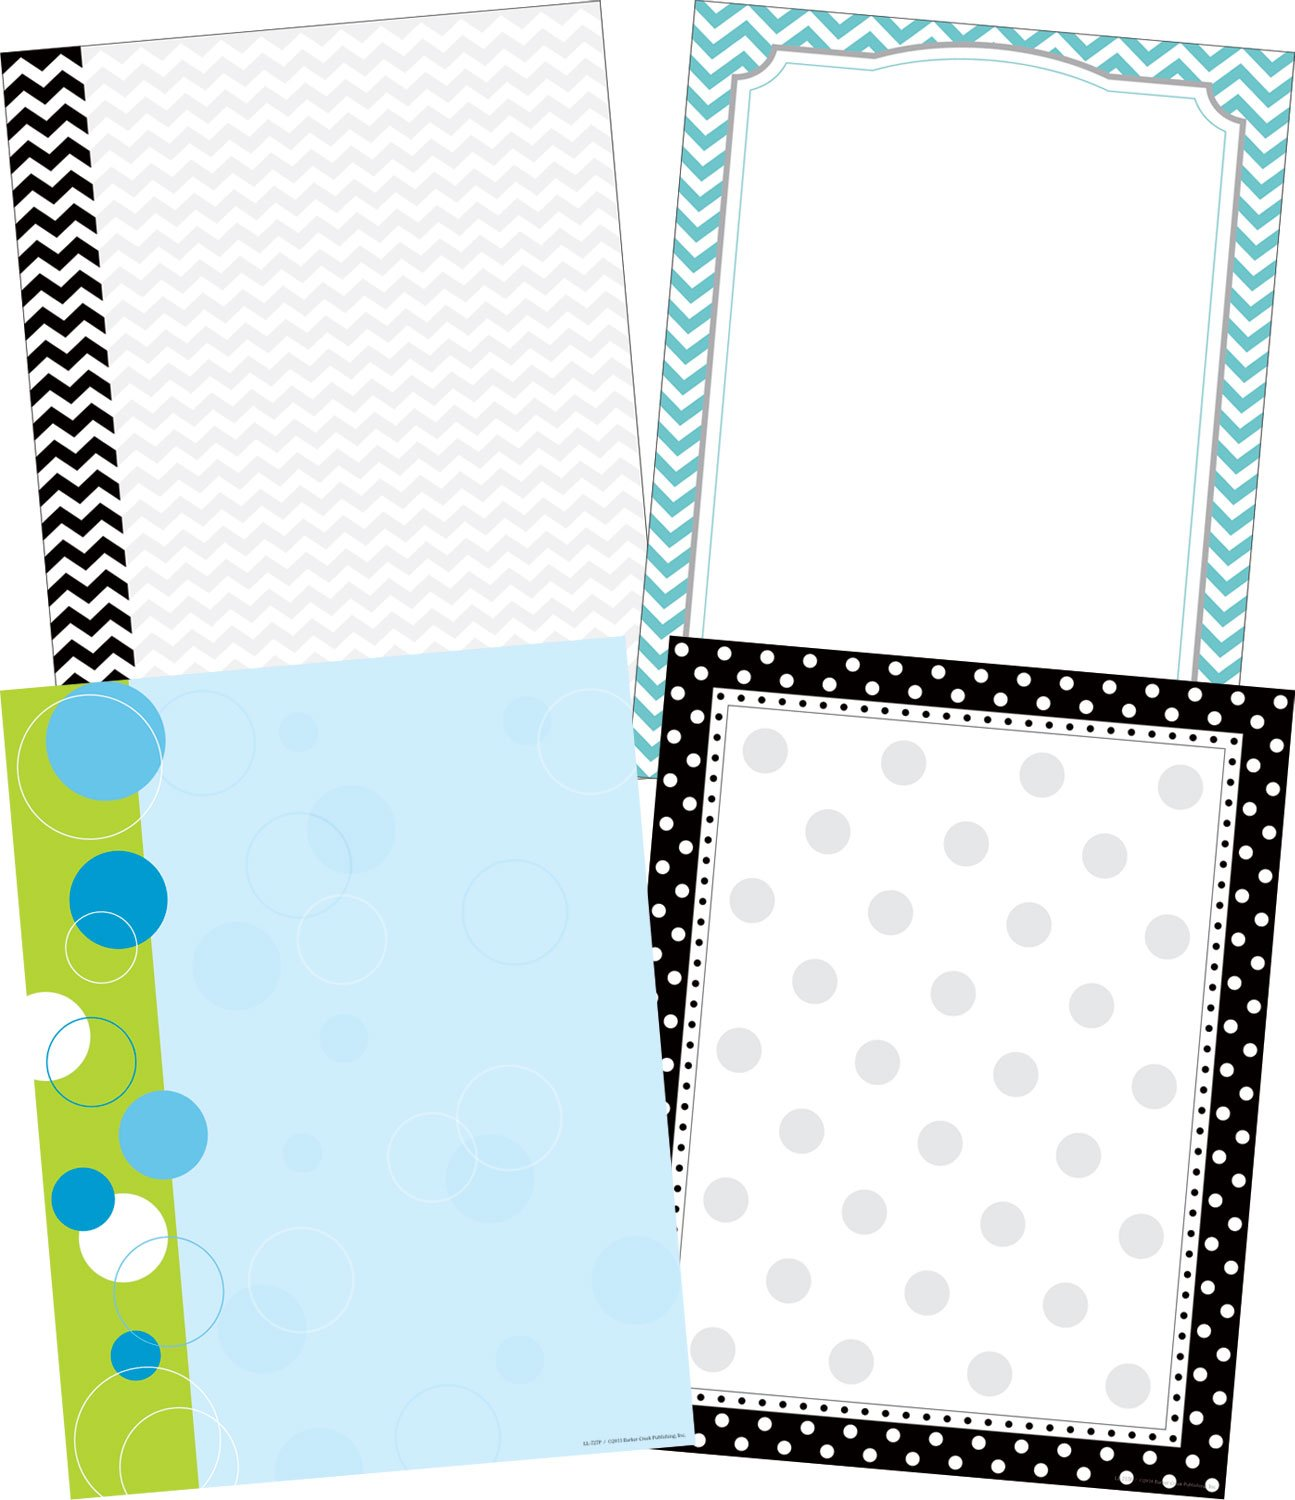 Barker Creek - Office Products Chevron and Dots Designer Computer Paper Set, 50 Each of 4 Designs (SS-0756)